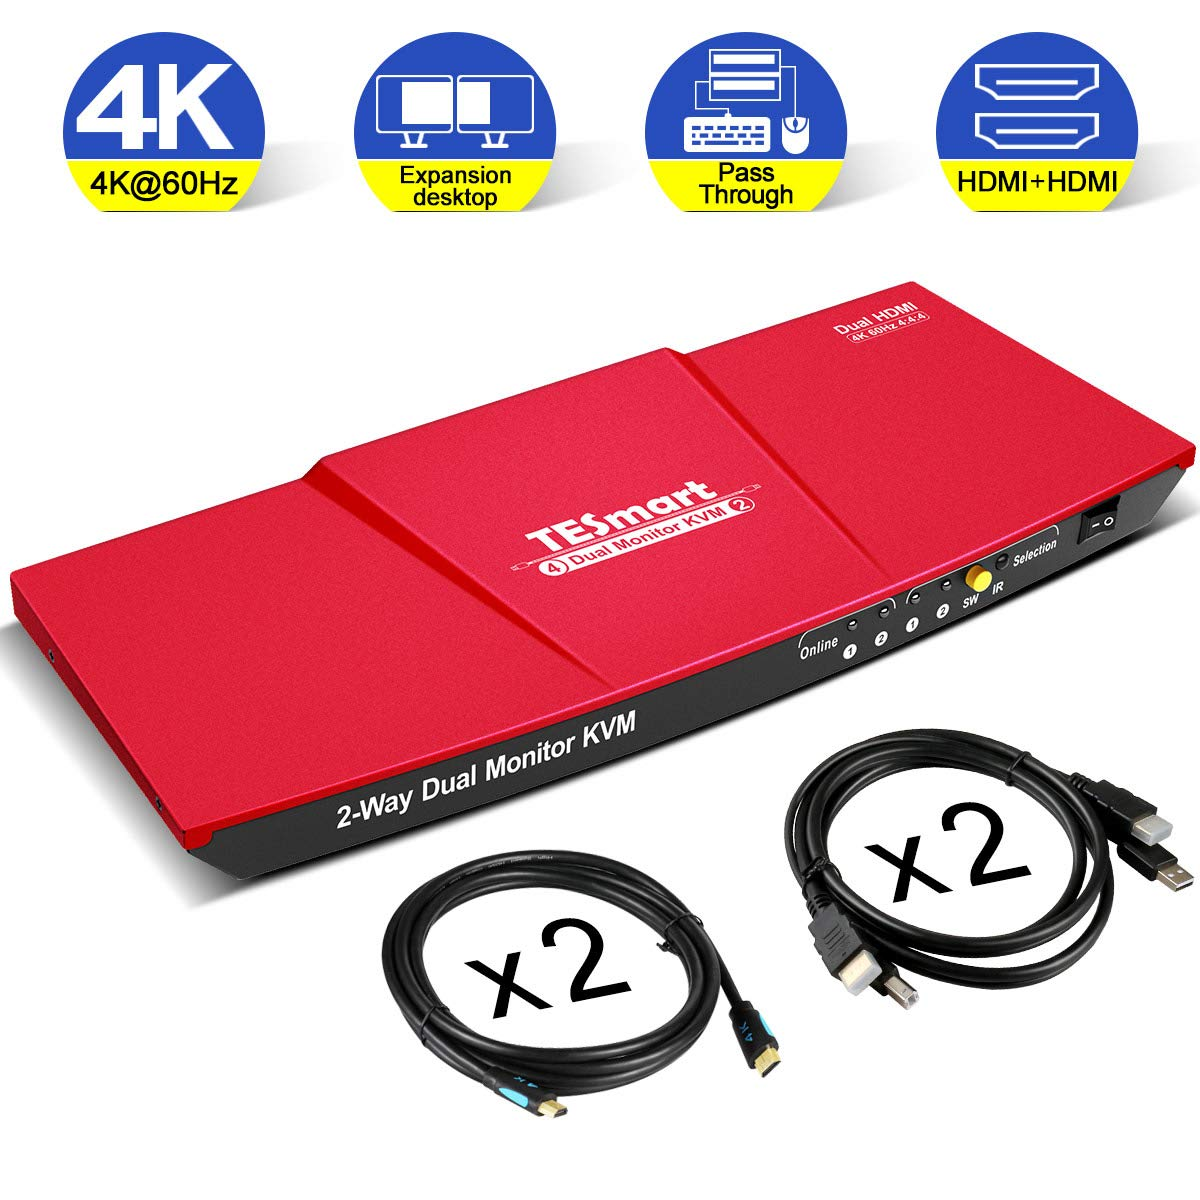 TESmart Dual HDMI 4x2 Dual Monitor KVM Switch 2 Port Updated 4K@60Hz, Support HDCP 2.2(Red)